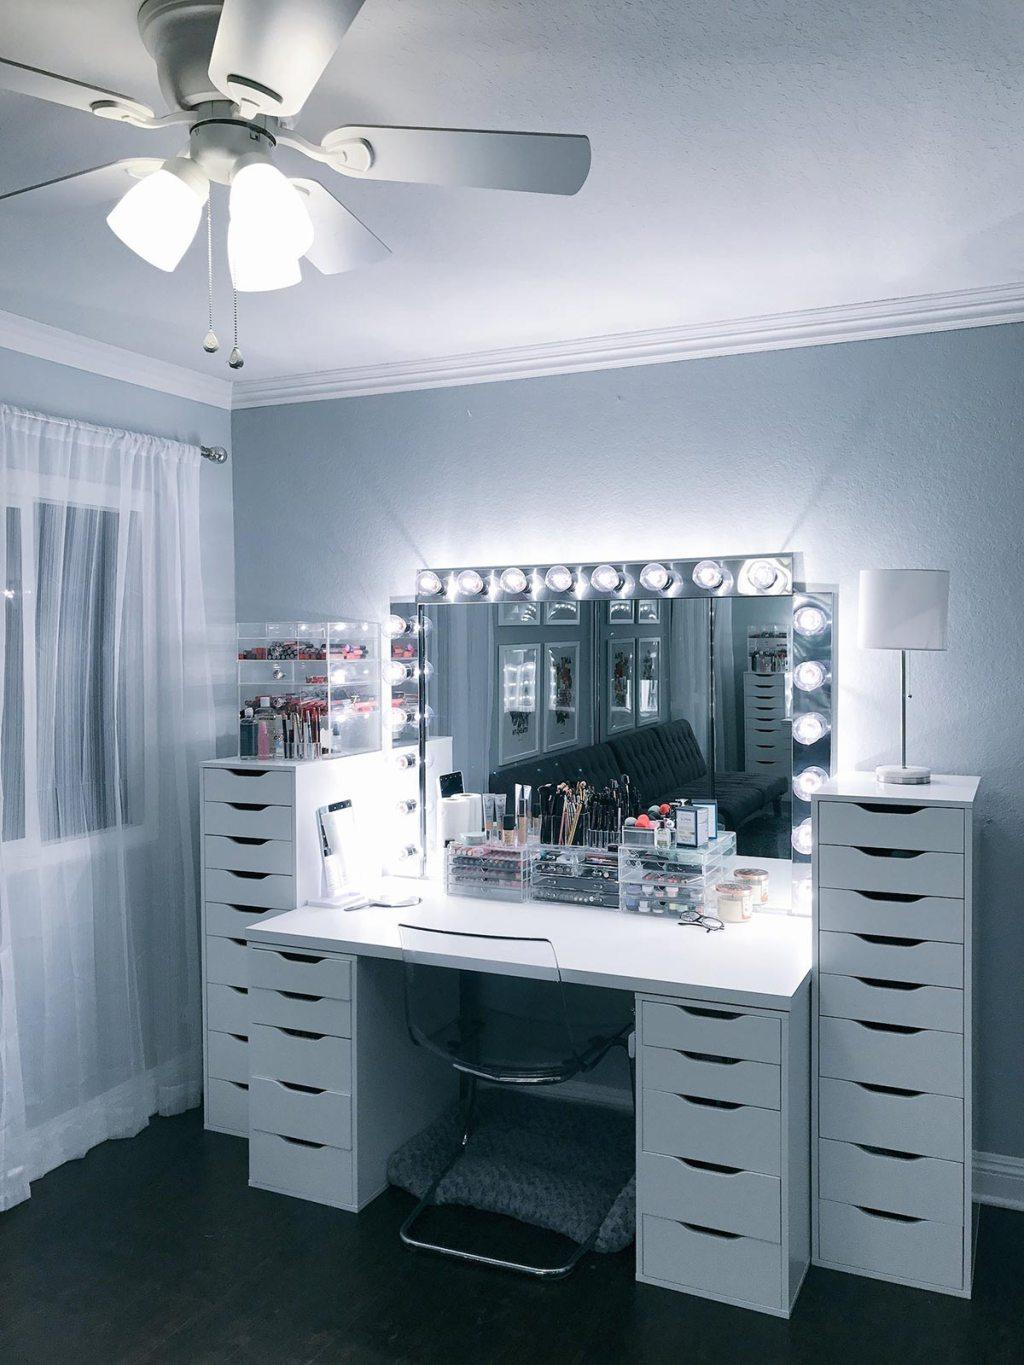 Makeup table: 60 ideas to decorate and organize 11